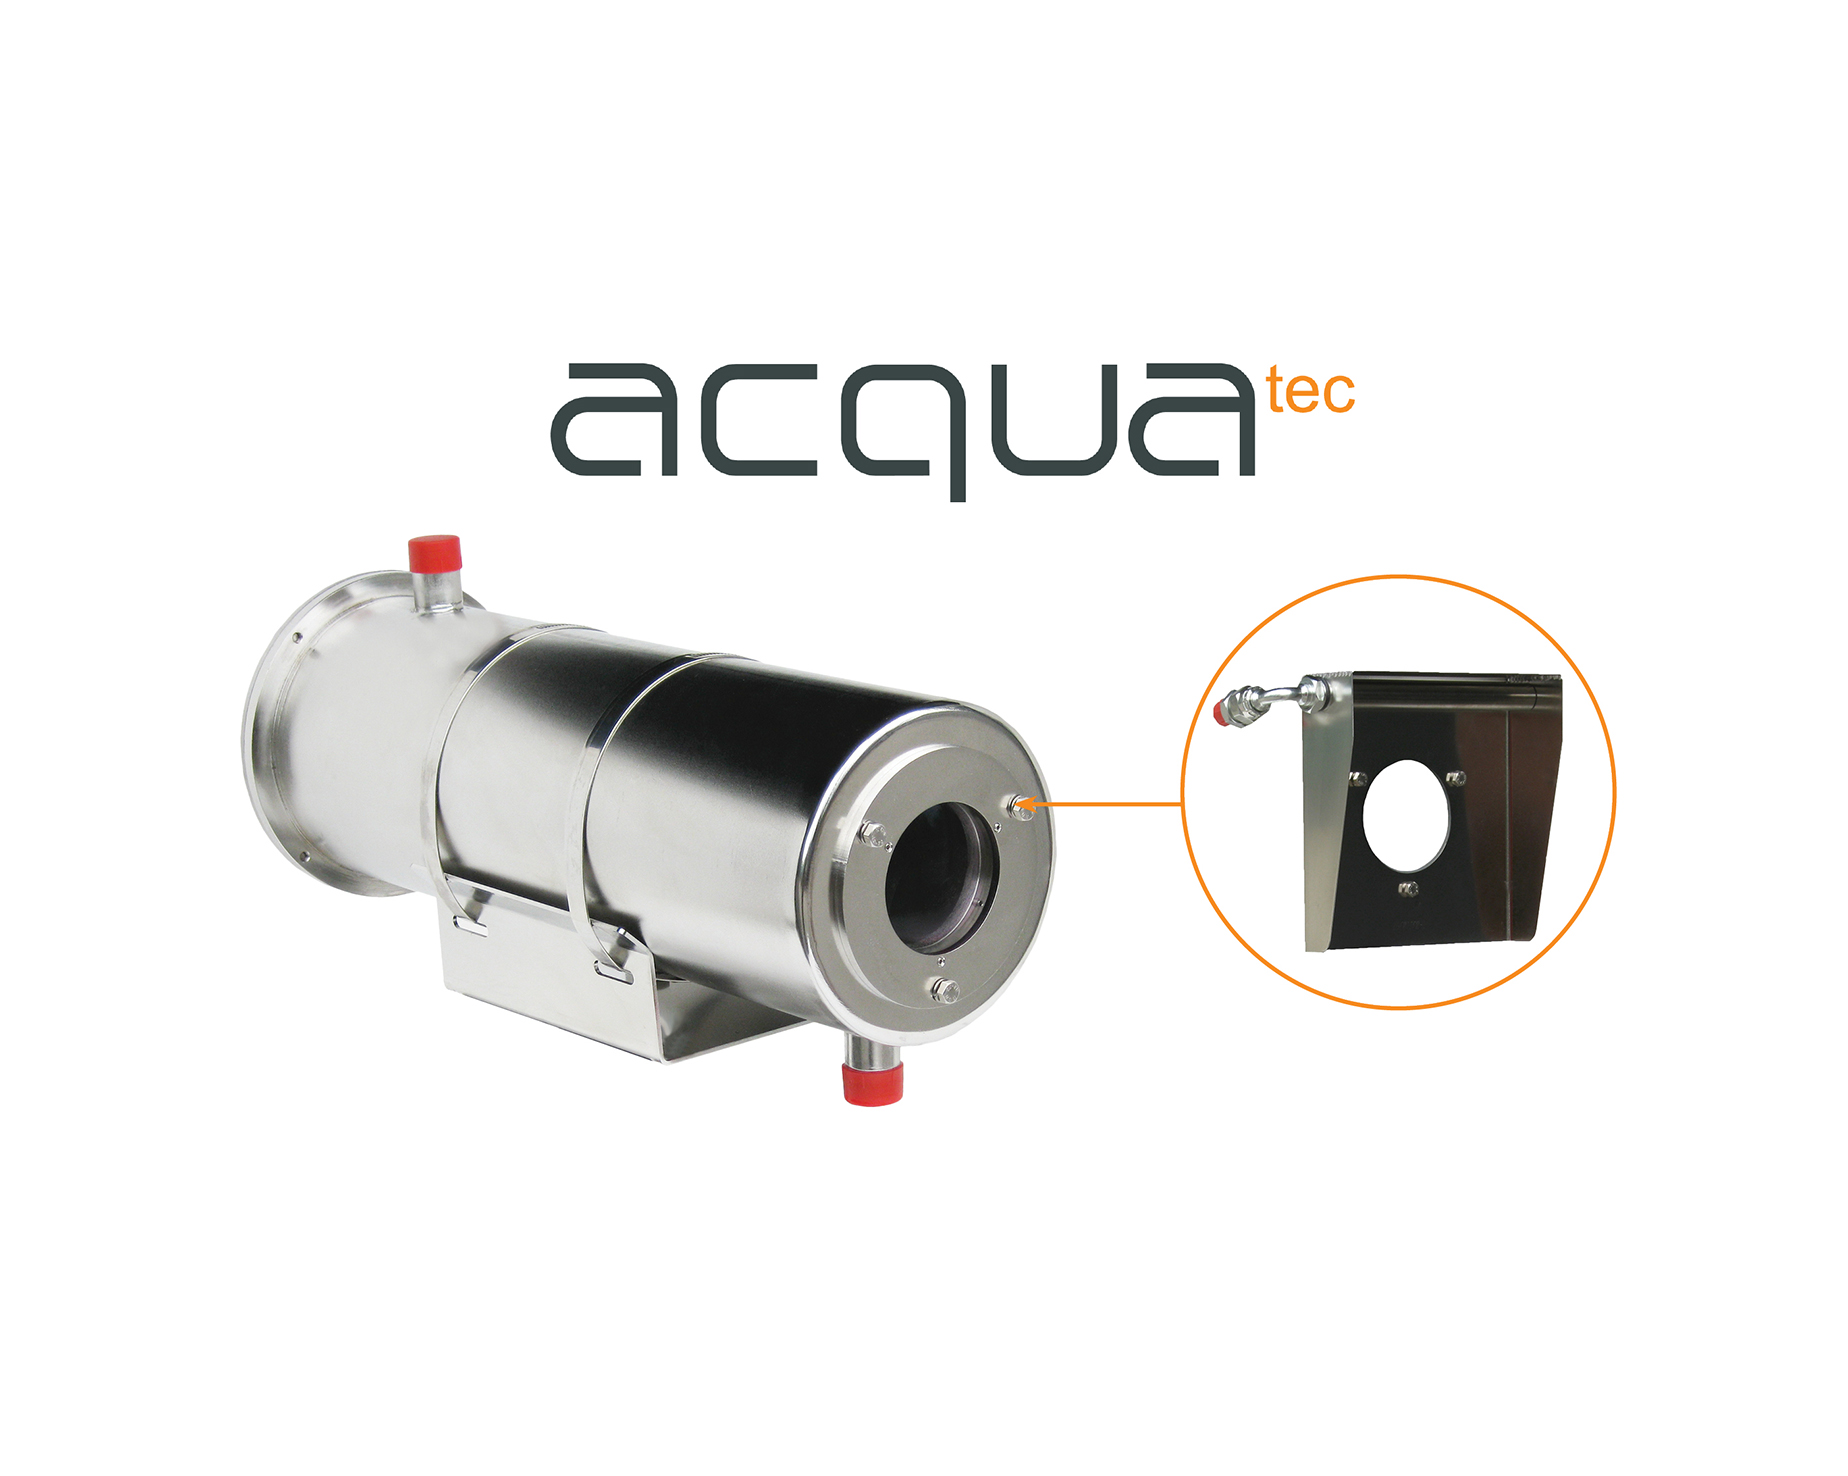 Air & water cooled pressurized camera housing (ACQUATEC)